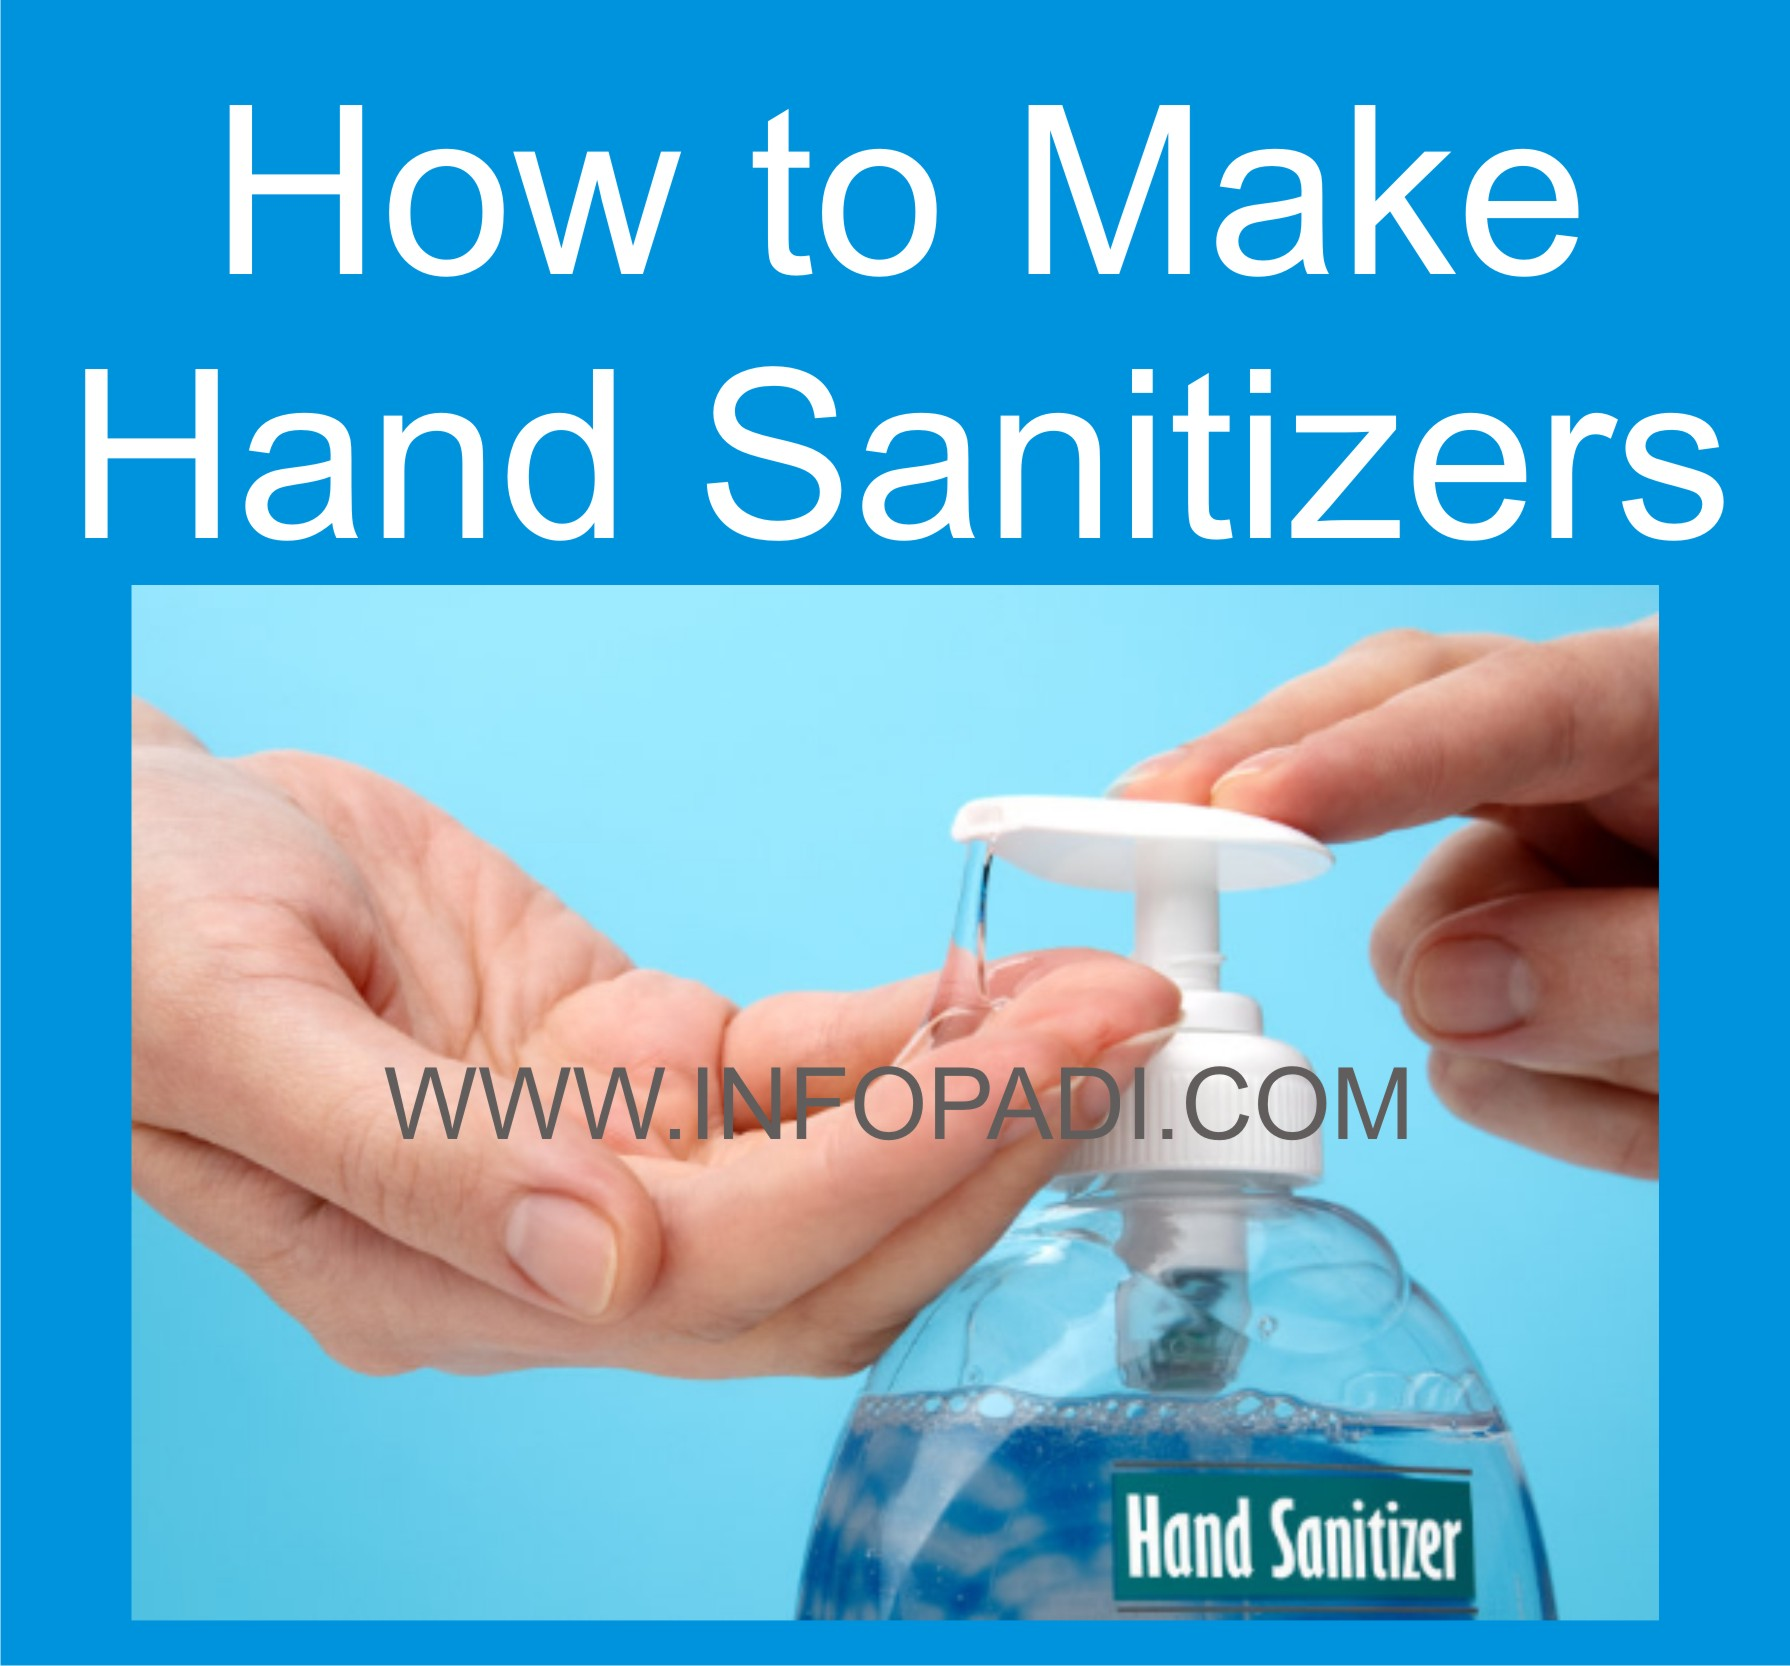 hand sanitizers - photo #24